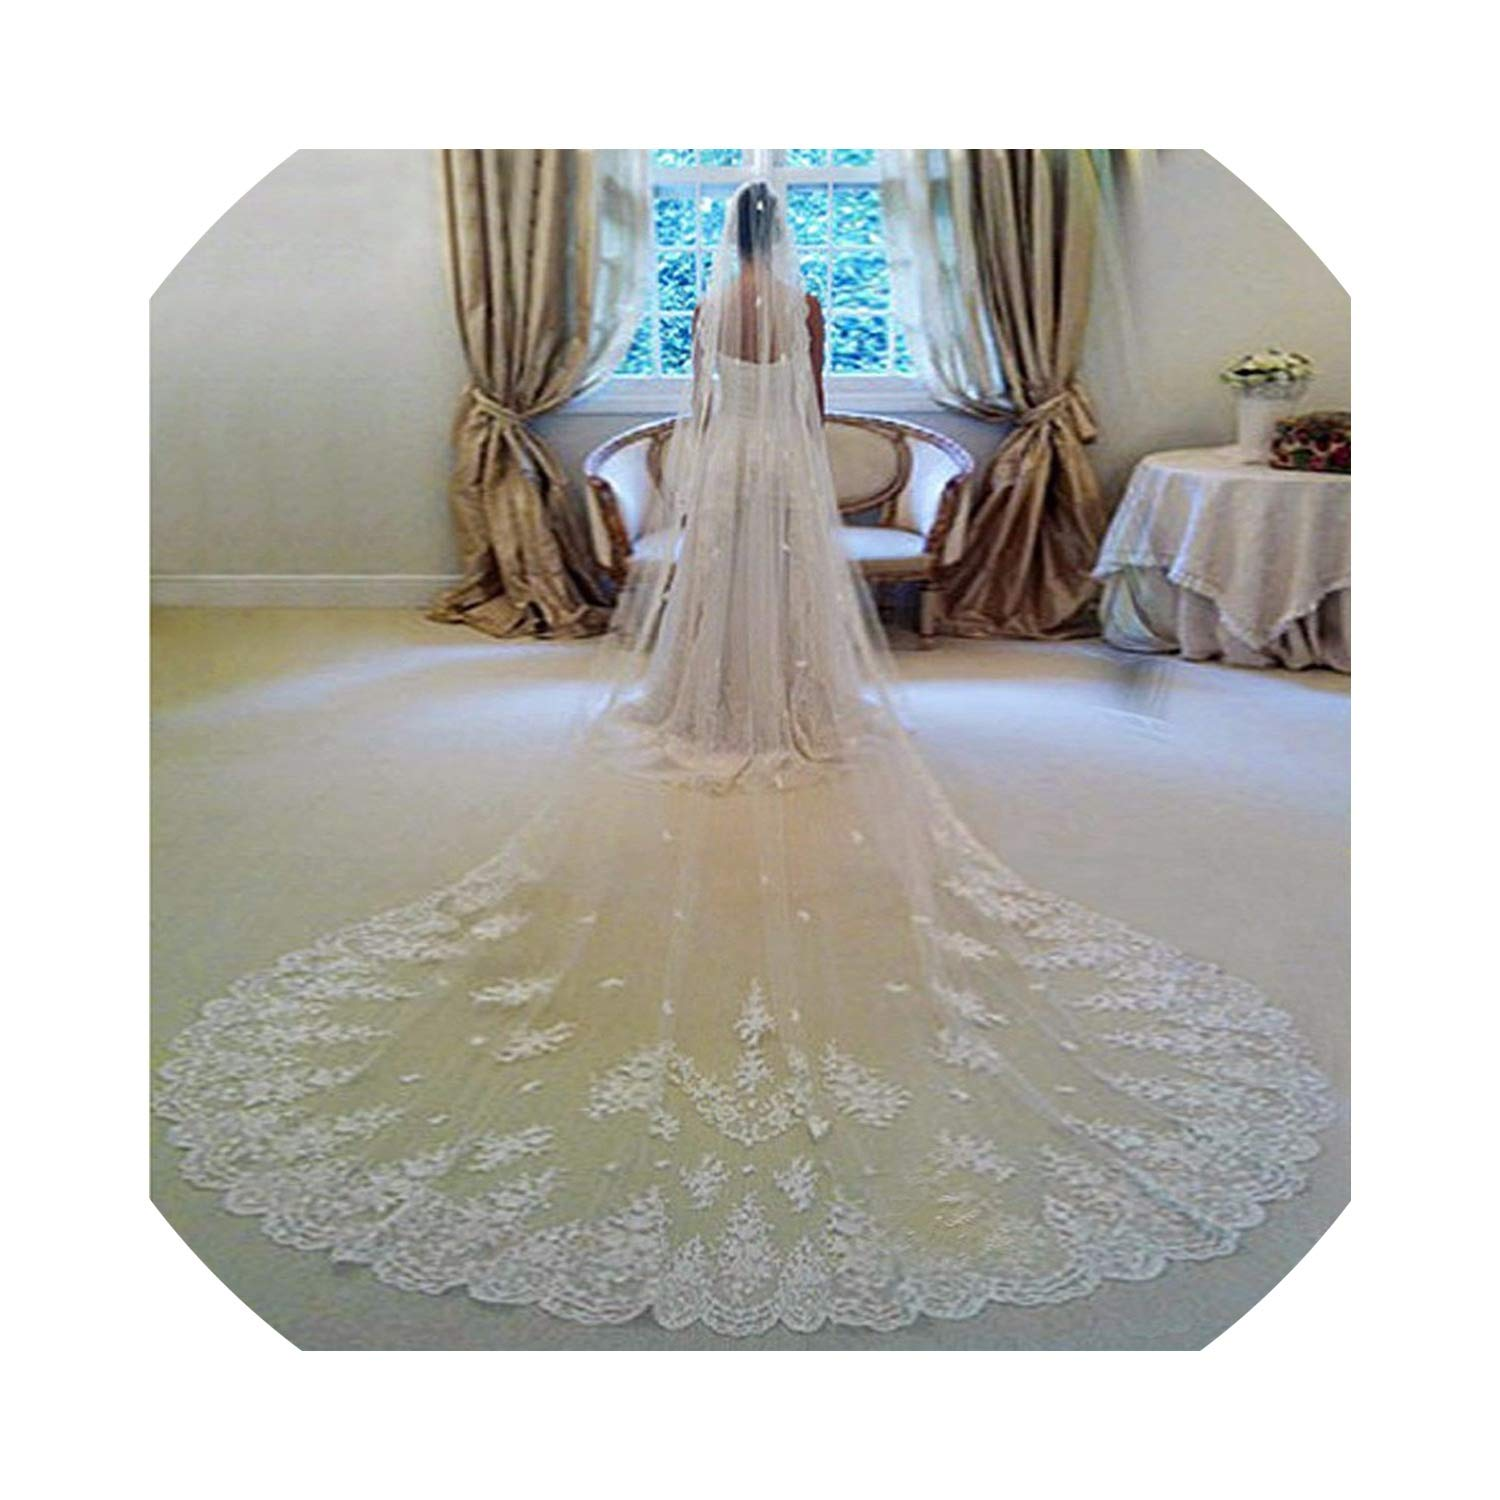 4 Meters Long Wedding Veil Bridal Veils White/Ivory Lace Edge With Comb,White,350cm